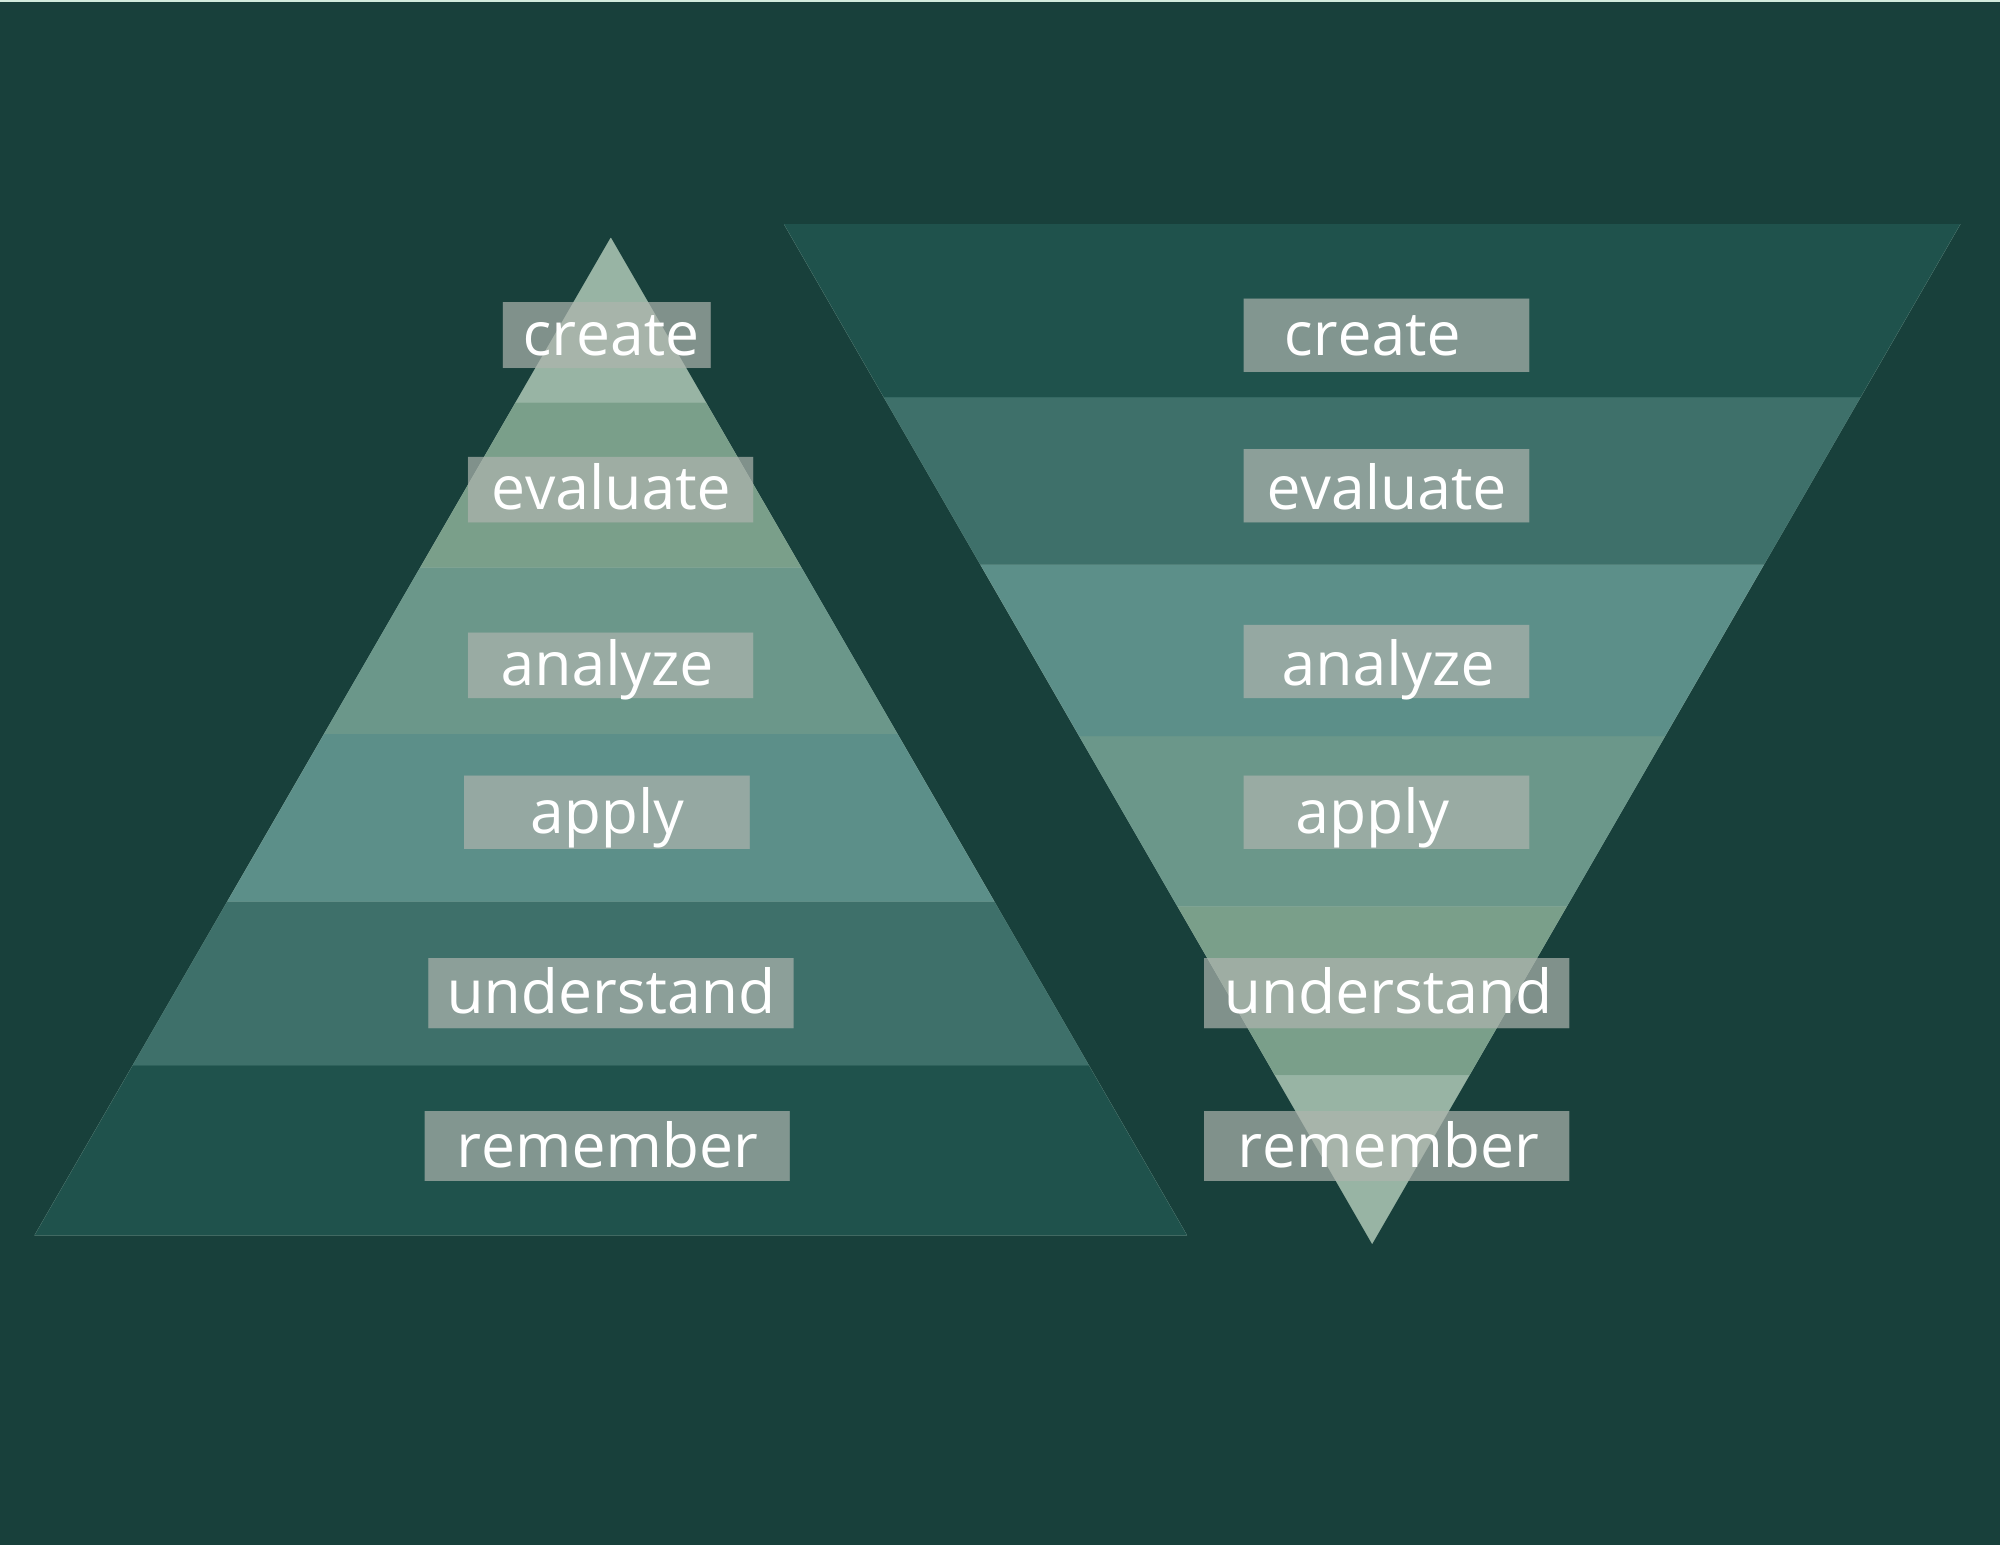 "Diagram of Bloom's Taxonomy with two triangles with 6 tiers each. Triangle 1 from largest bottom tier to smallest top tier: remember, understand, apply, analyze, evaluate, create. In triangle 2, the triangle is flipped upside down. The ""create"" tier is now the largest tier."